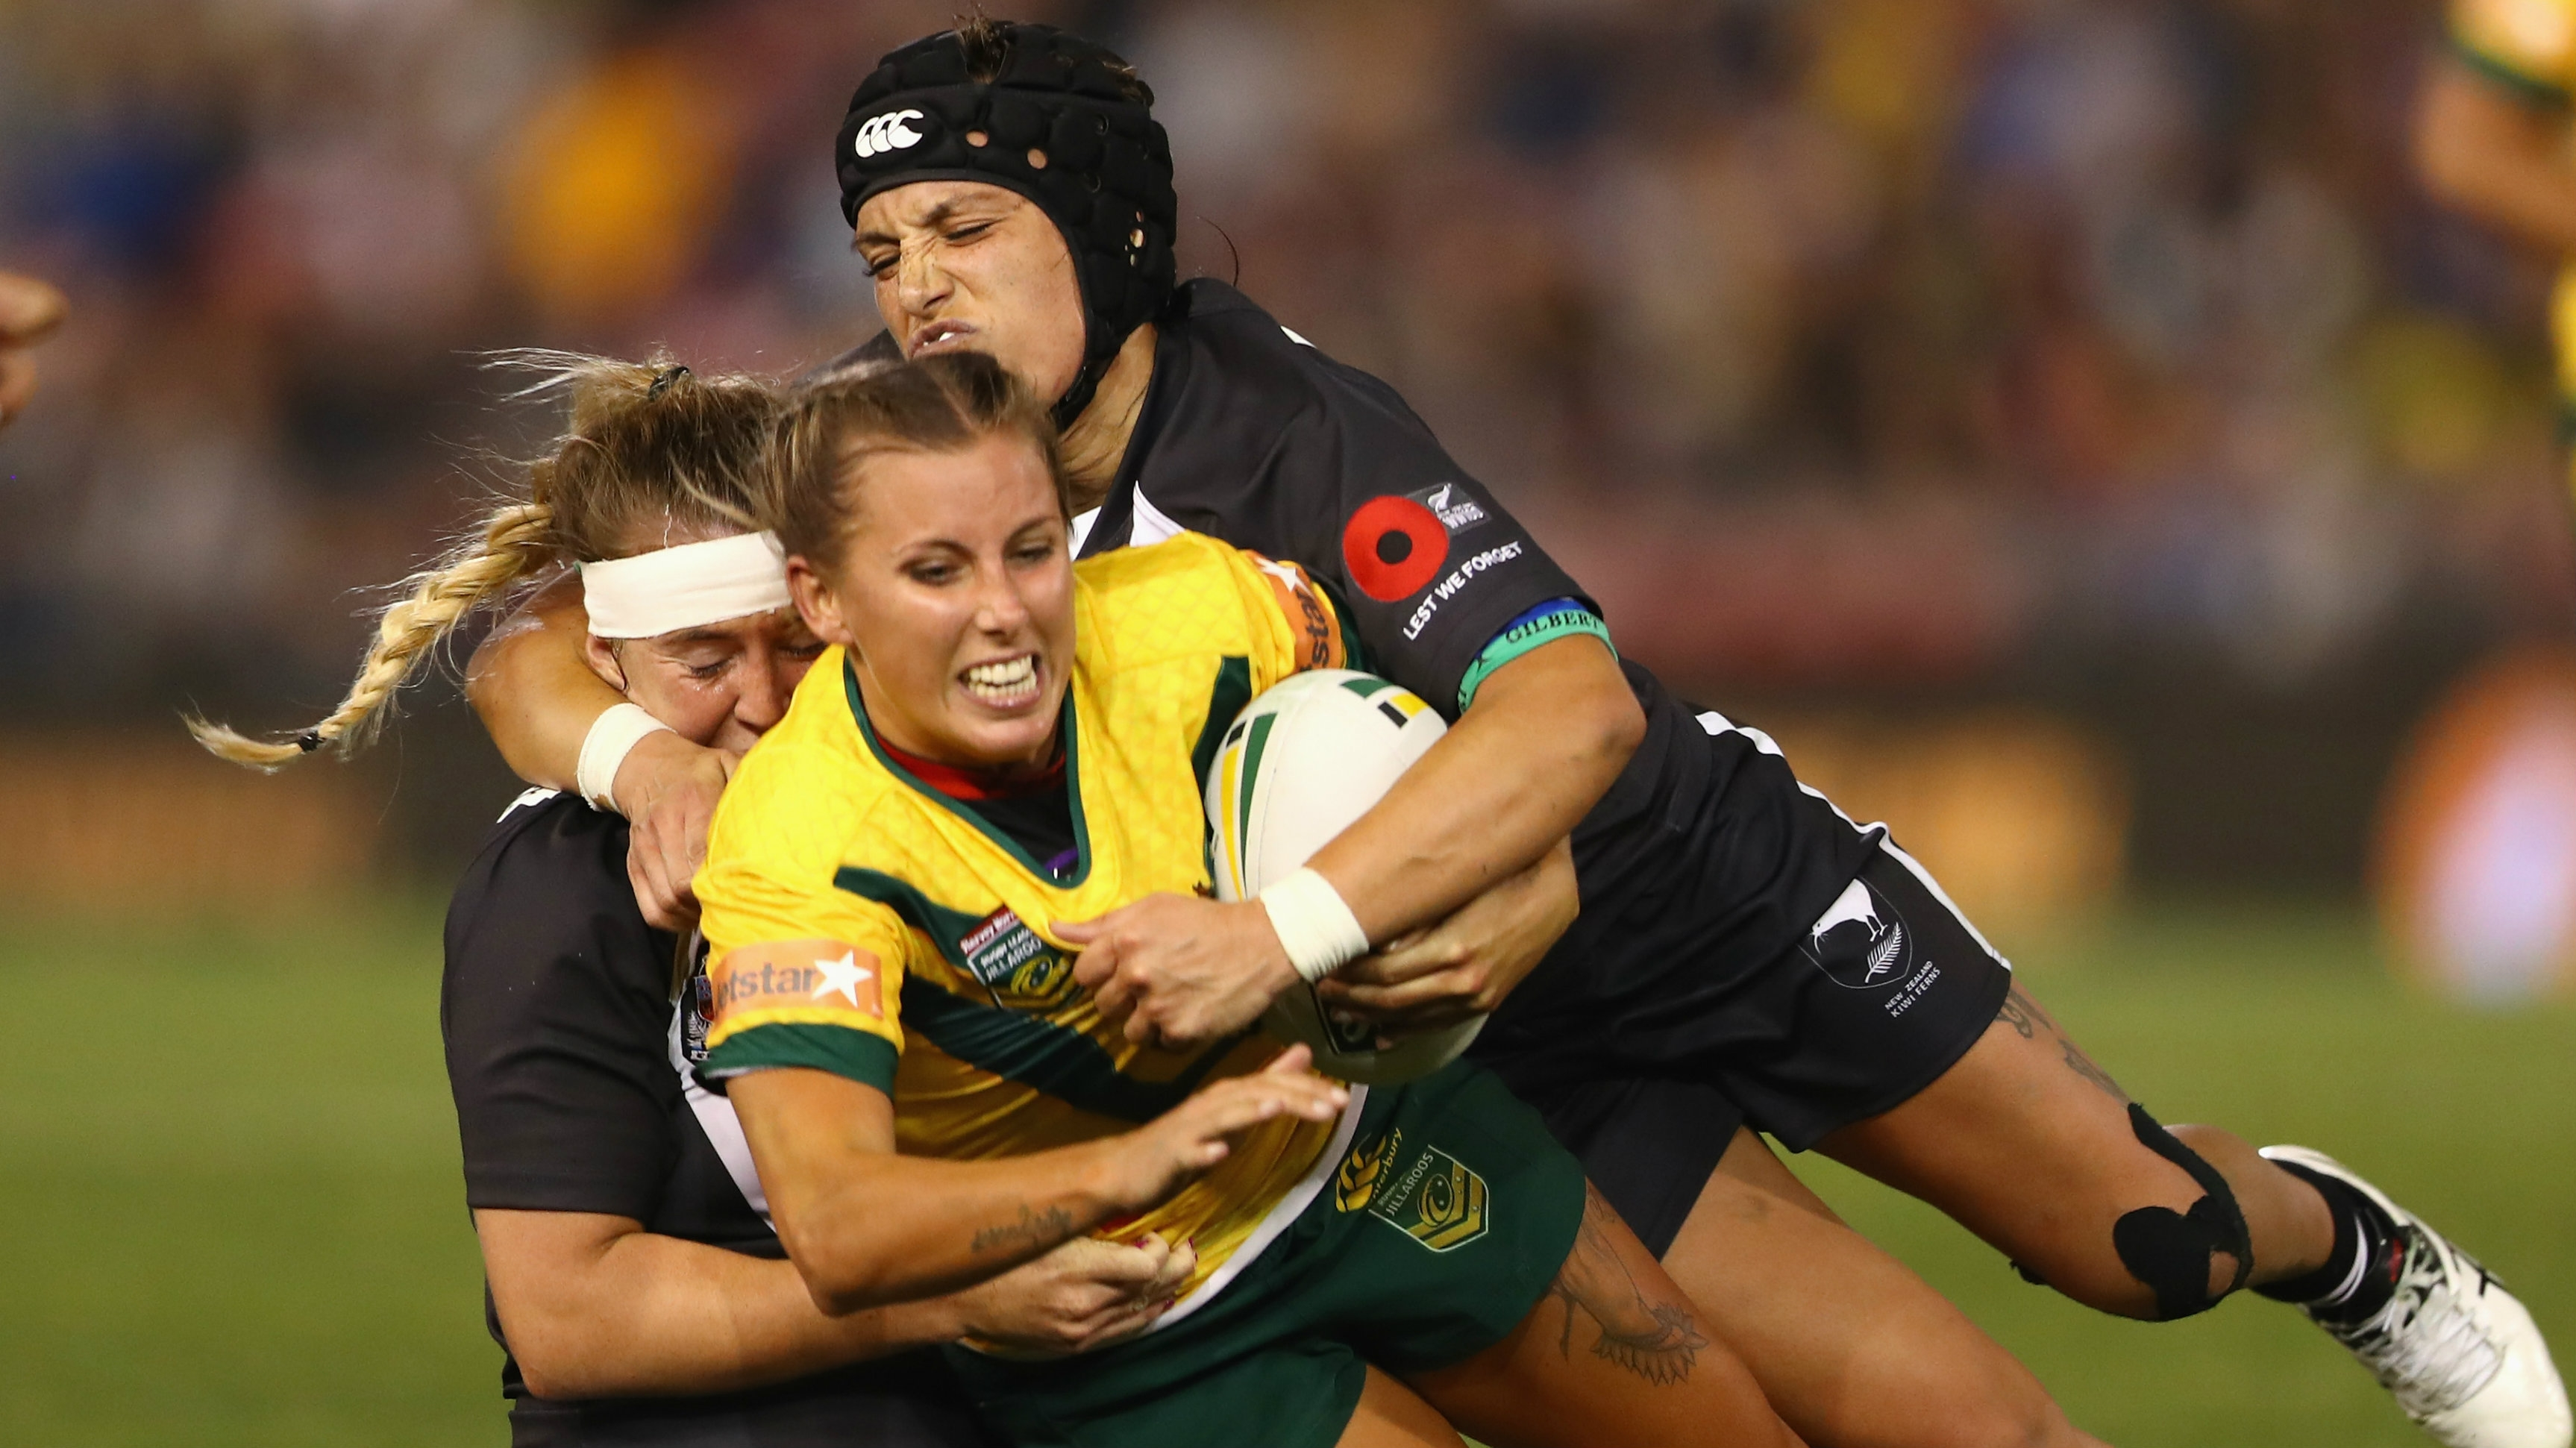 Women S Rugby League World Cup When Is It Who Playing And How To Watch